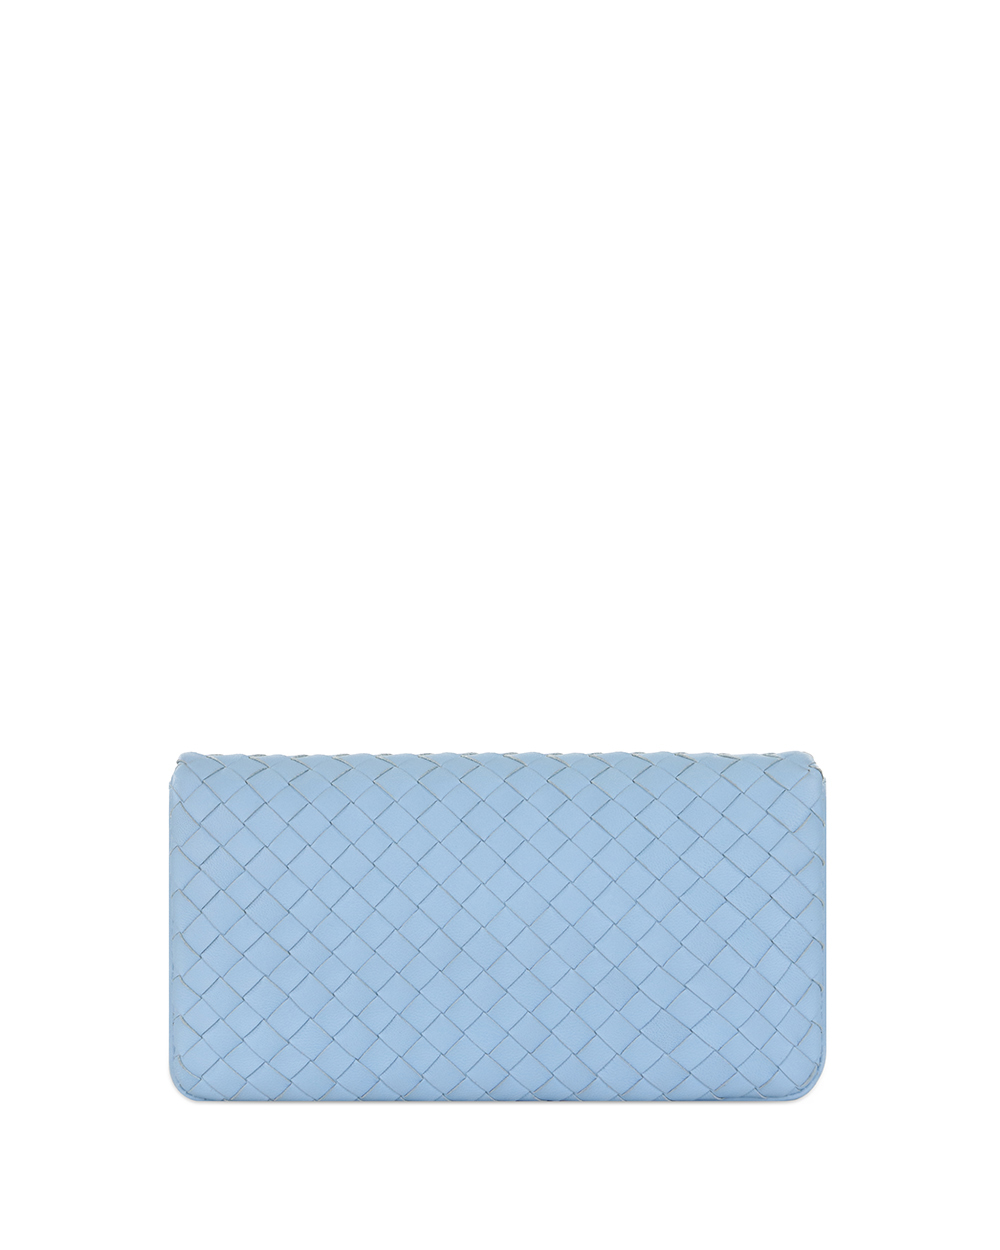 Woven Lamb Leather Clutch 1